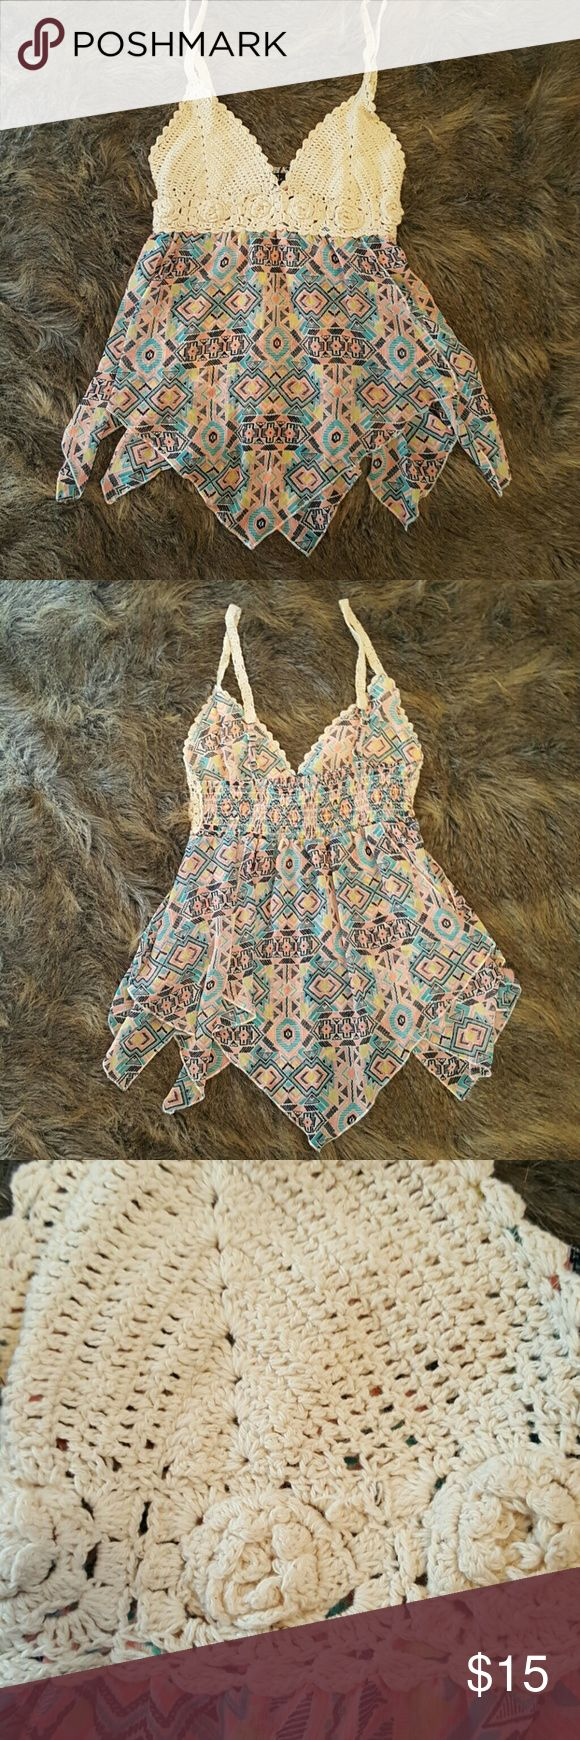 Tribal print and crochet top Tribal print and crochet top. Asymmetric bottm. Stretch back. Light and flowing. Approx length from top of shoulder to bottom 23-25 inches. Could fit small or medium Rue 21 Tops